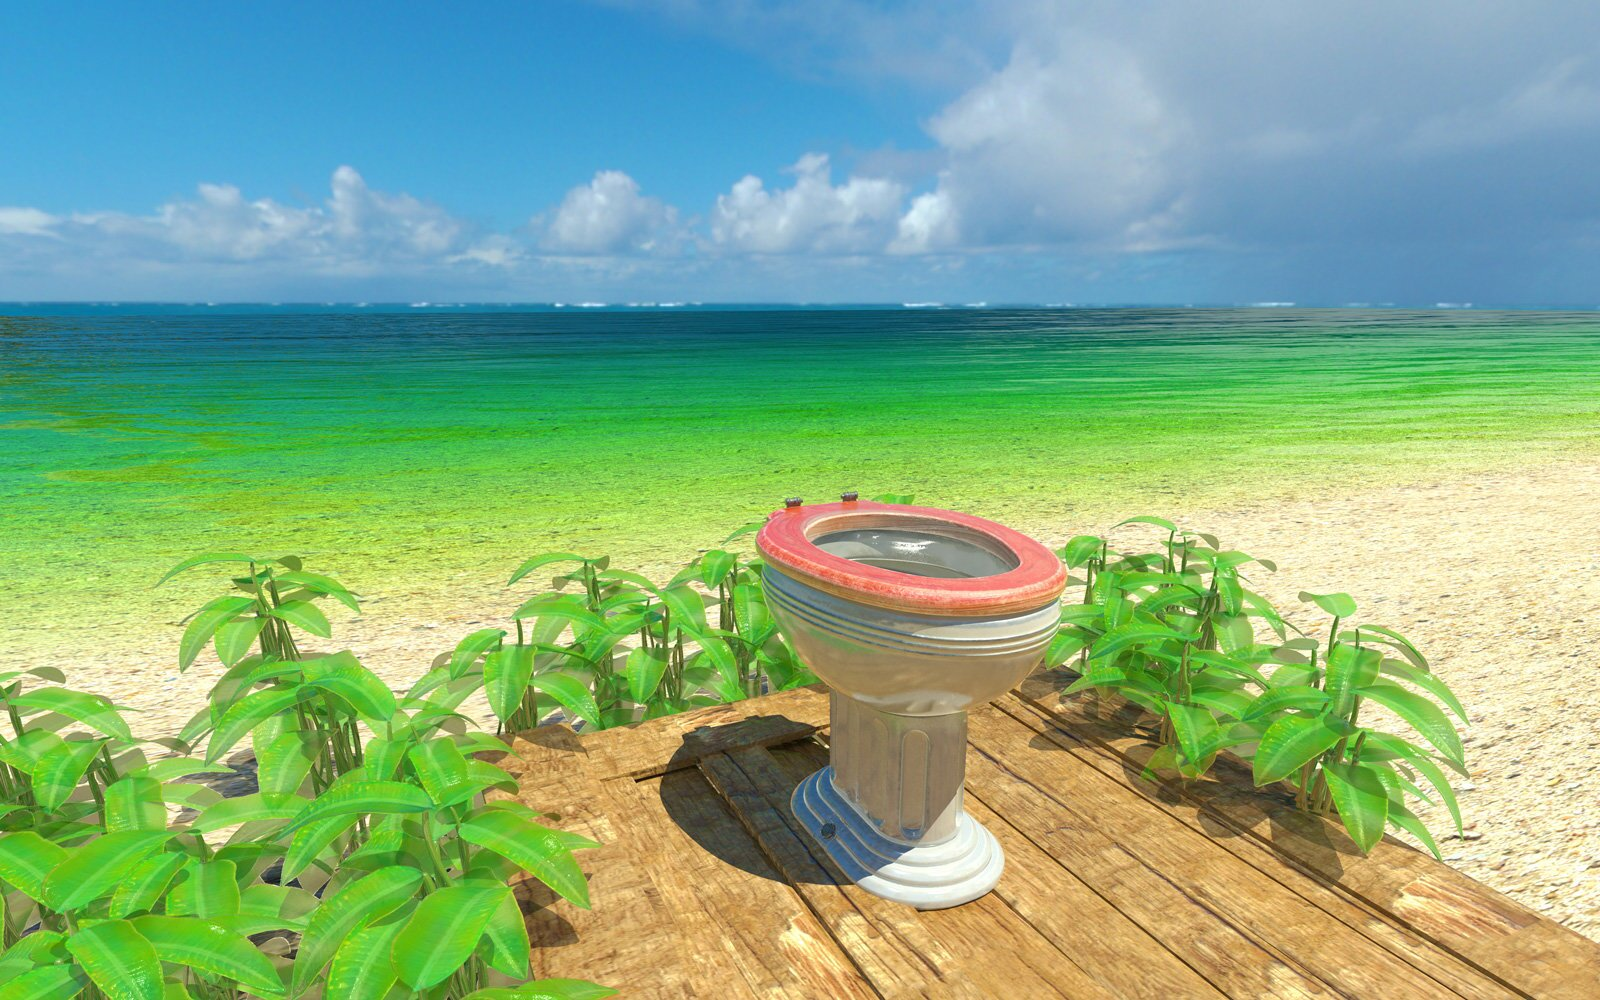 These Toilets Around the World Have Spectacular Views